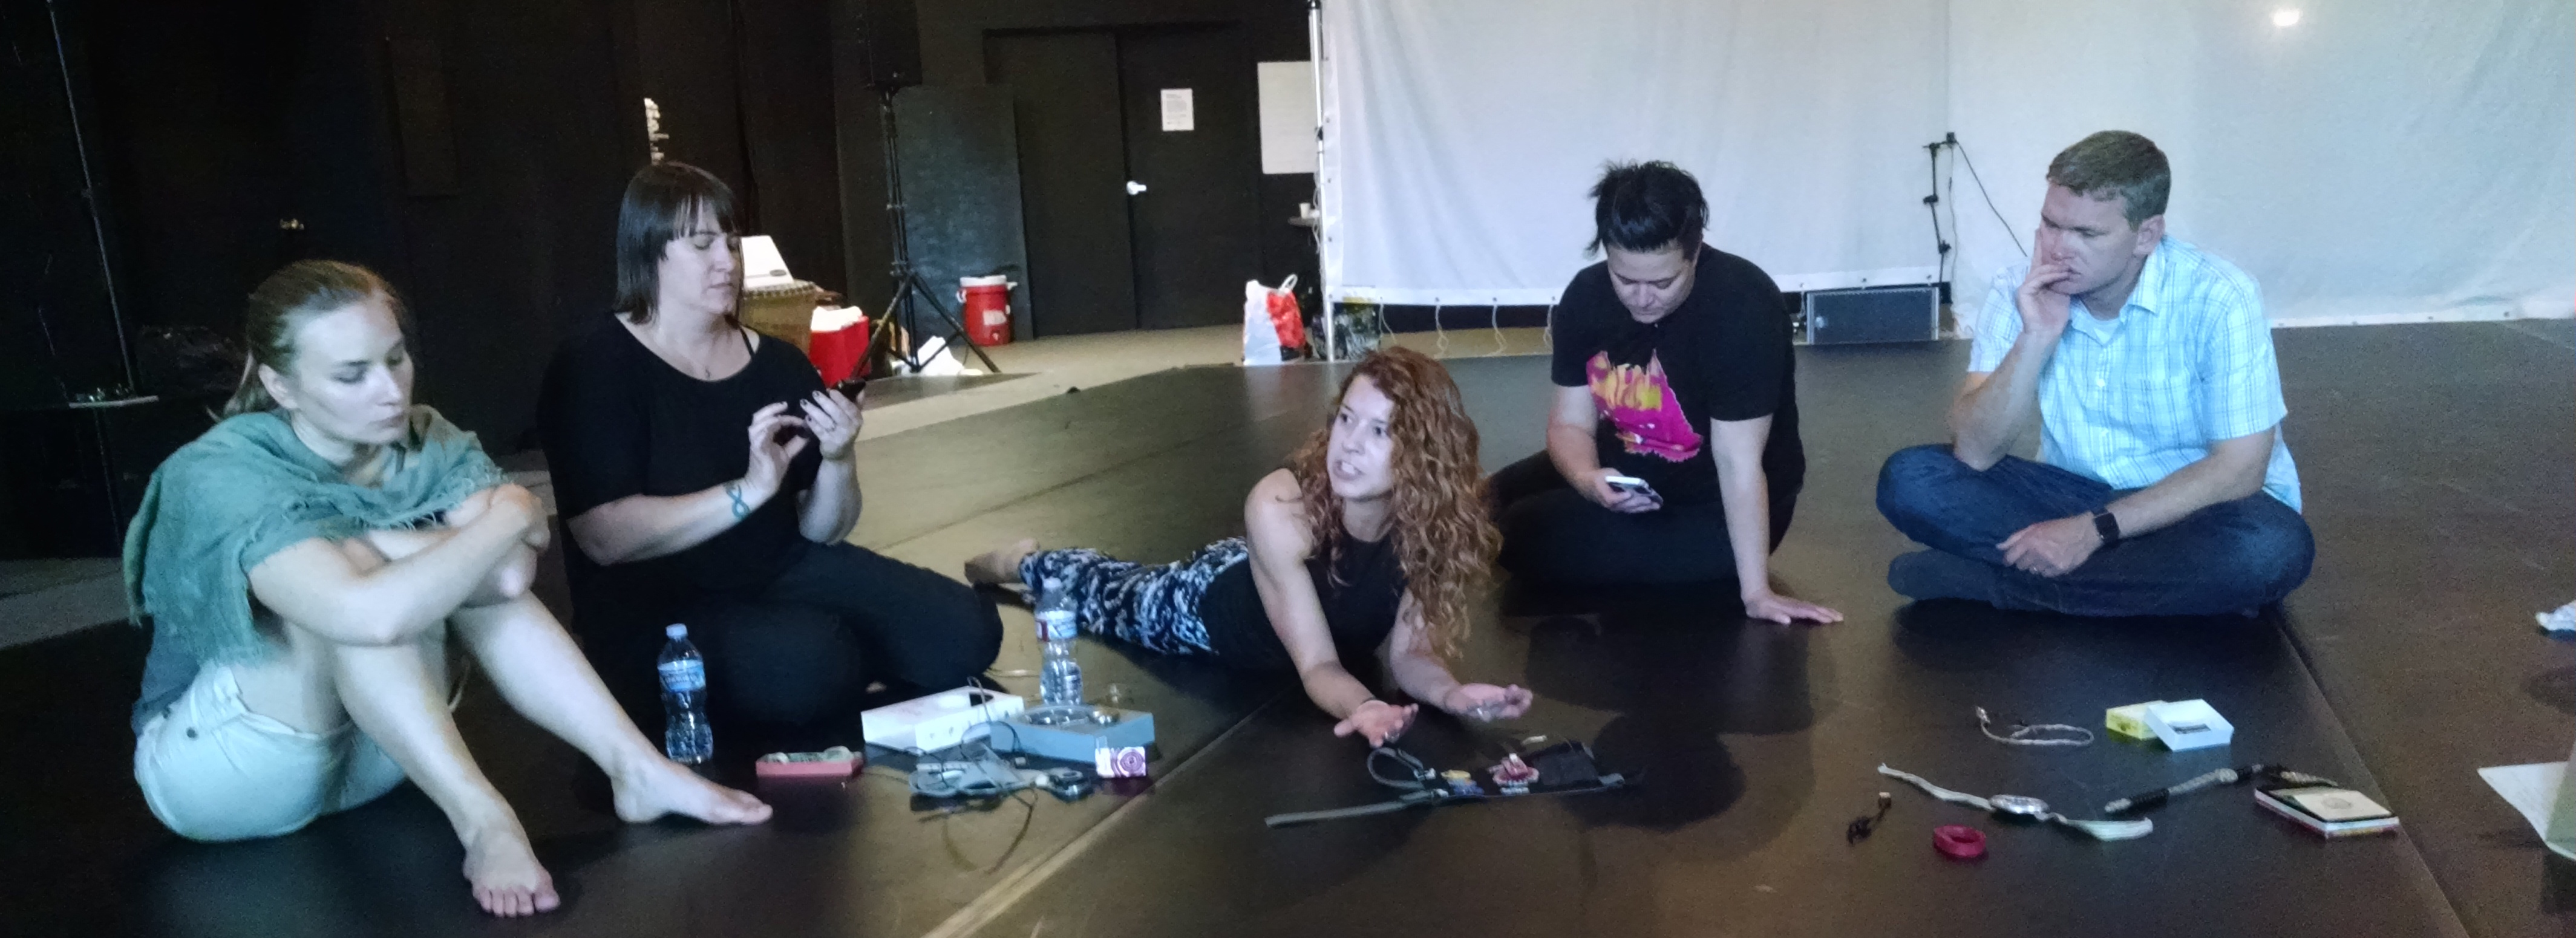 Five individuals sit on the floor with electronic components around them. The white woman in the middle is laying down and speaking to the rest.